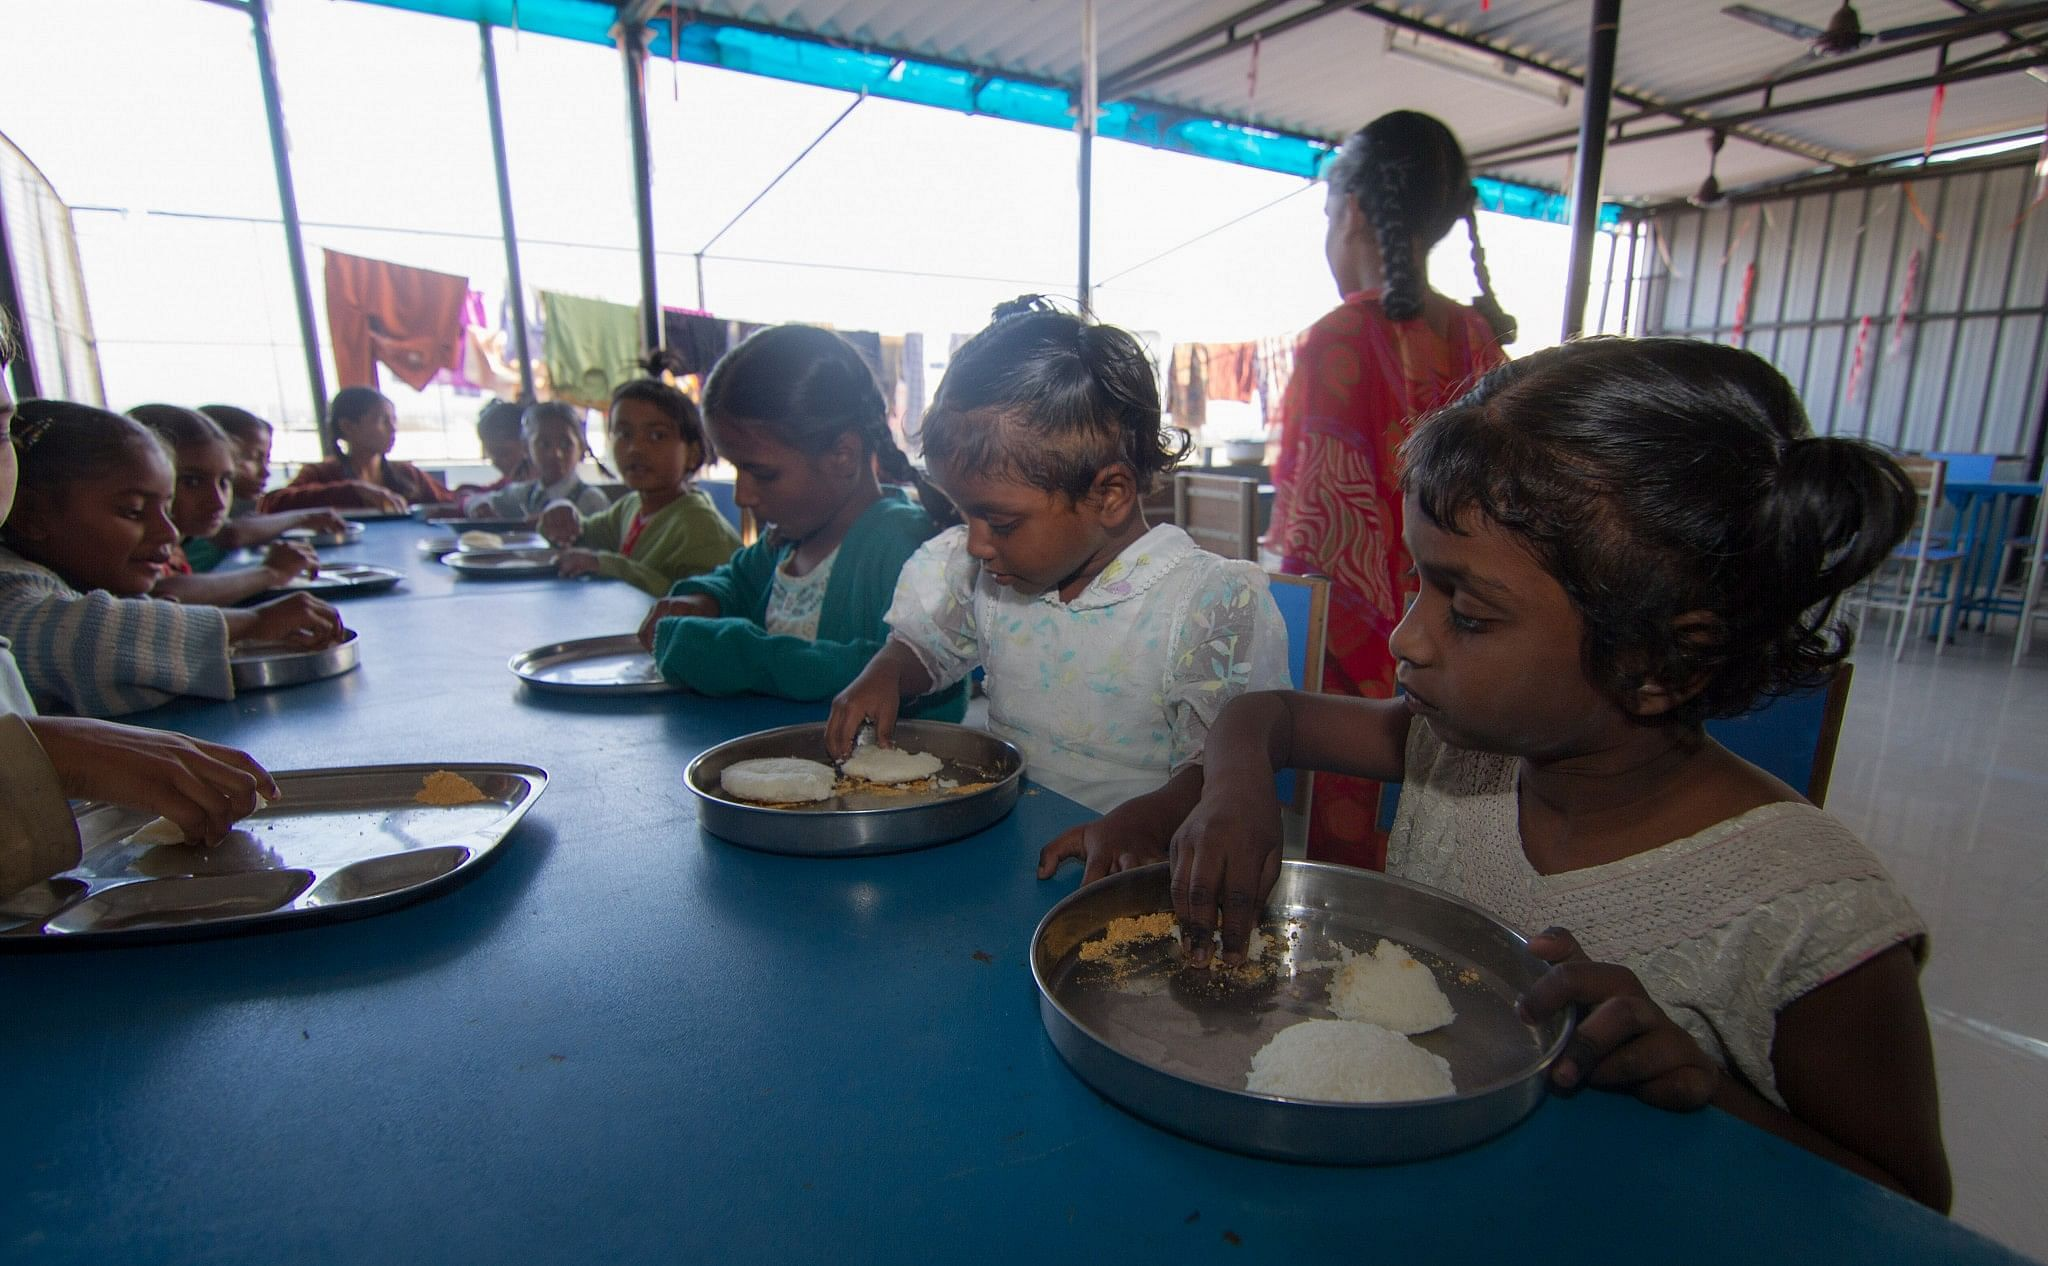 From good food to healthy living, Spandana leaves no stone unturned to improve the lives of these kids.